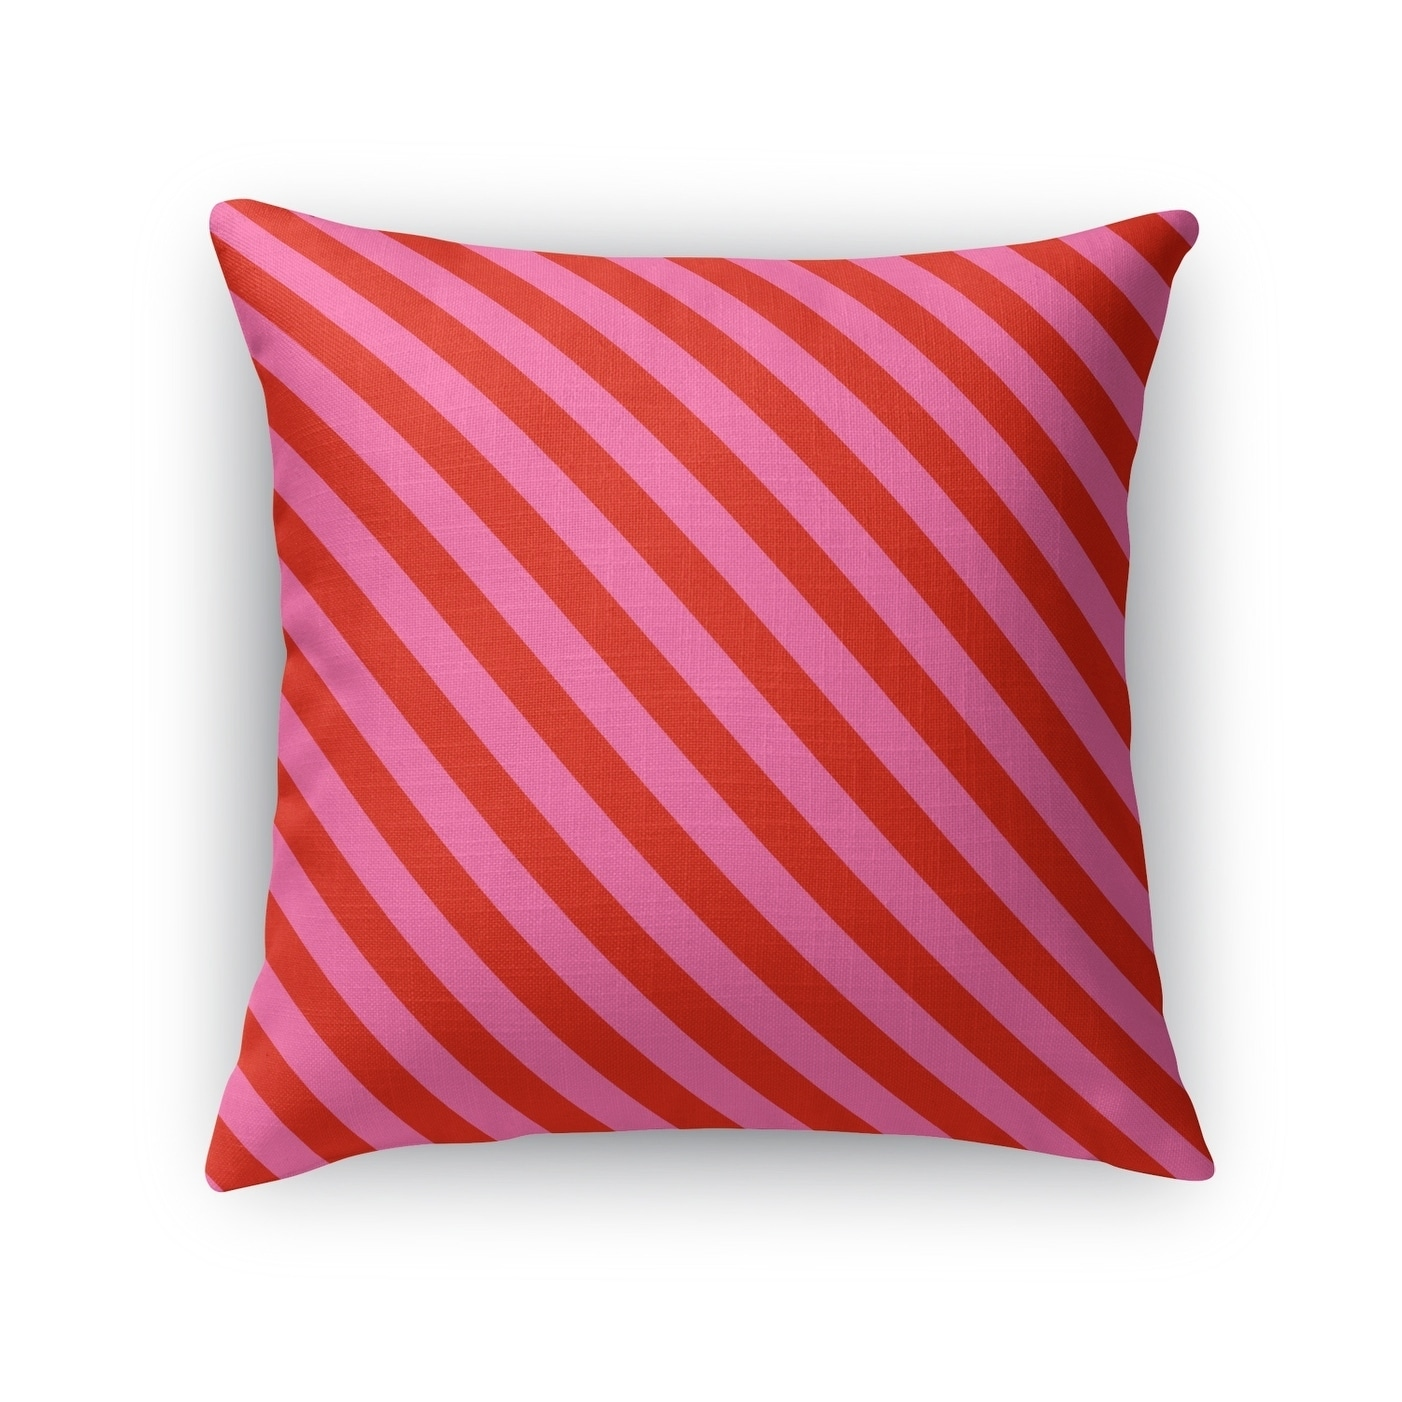 Shop Noel Throw Pillow By Kavka Designs Overstock 22544082